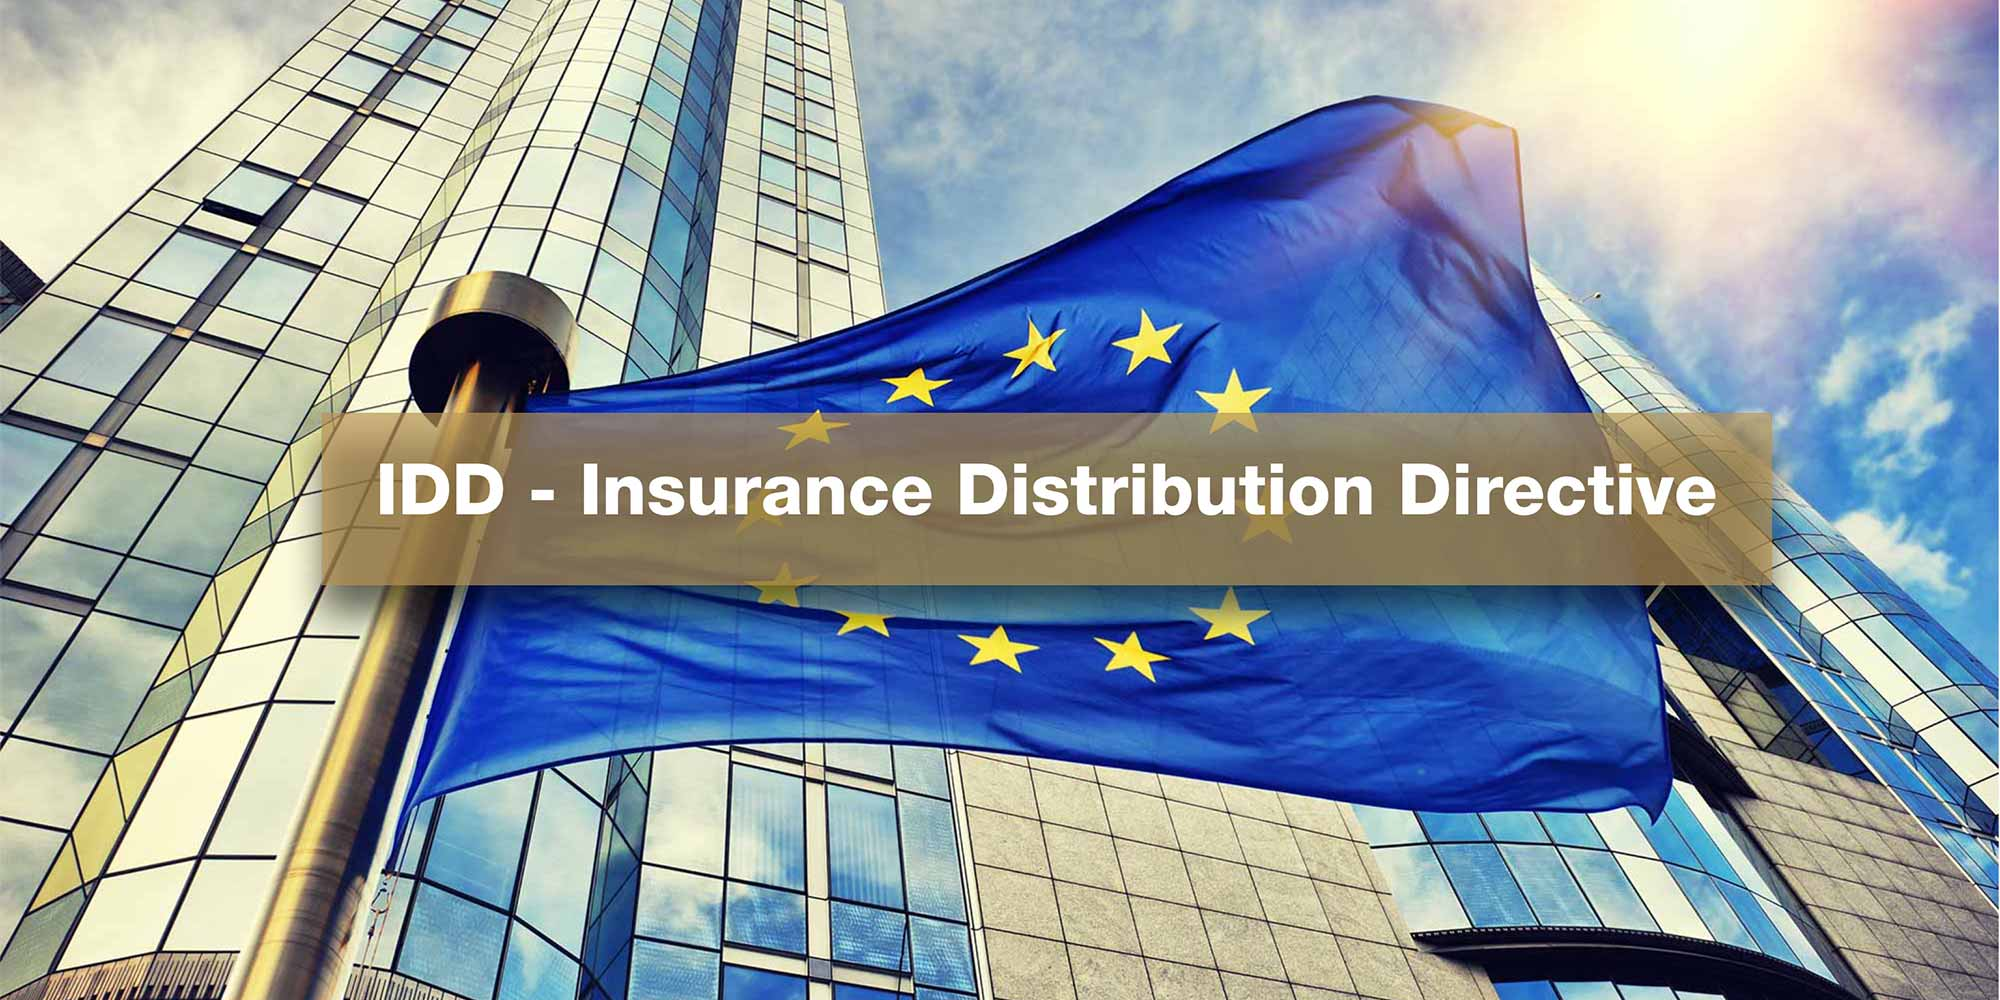 IDD - Insurance Distribution Directive